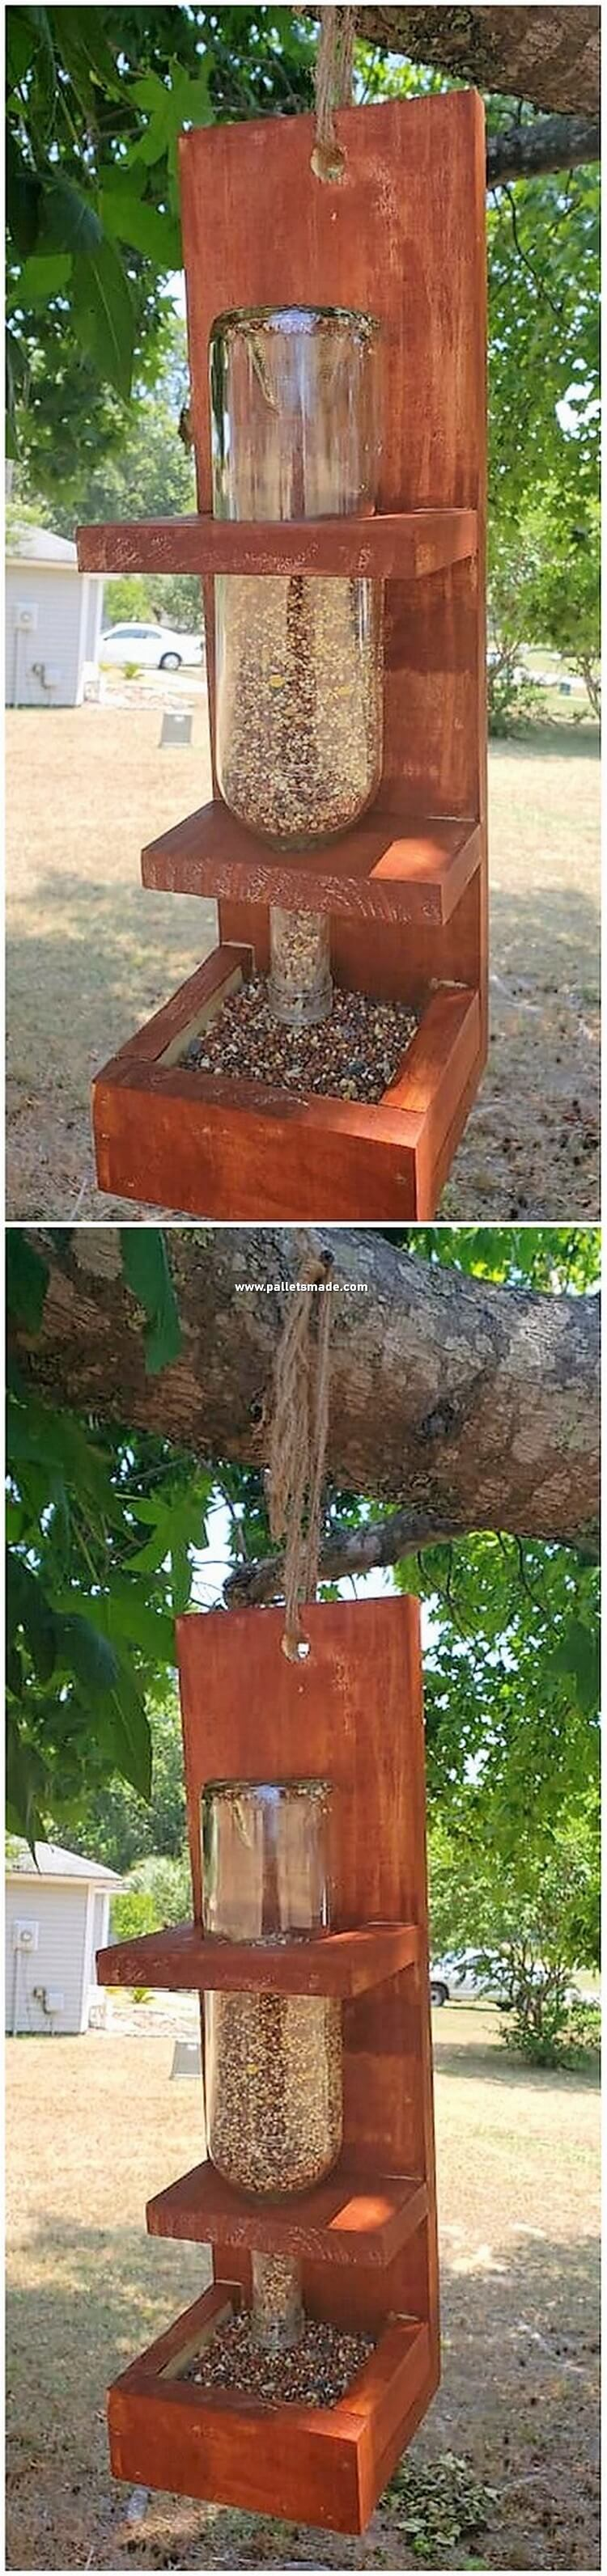 Pallet Birds Food Feeder